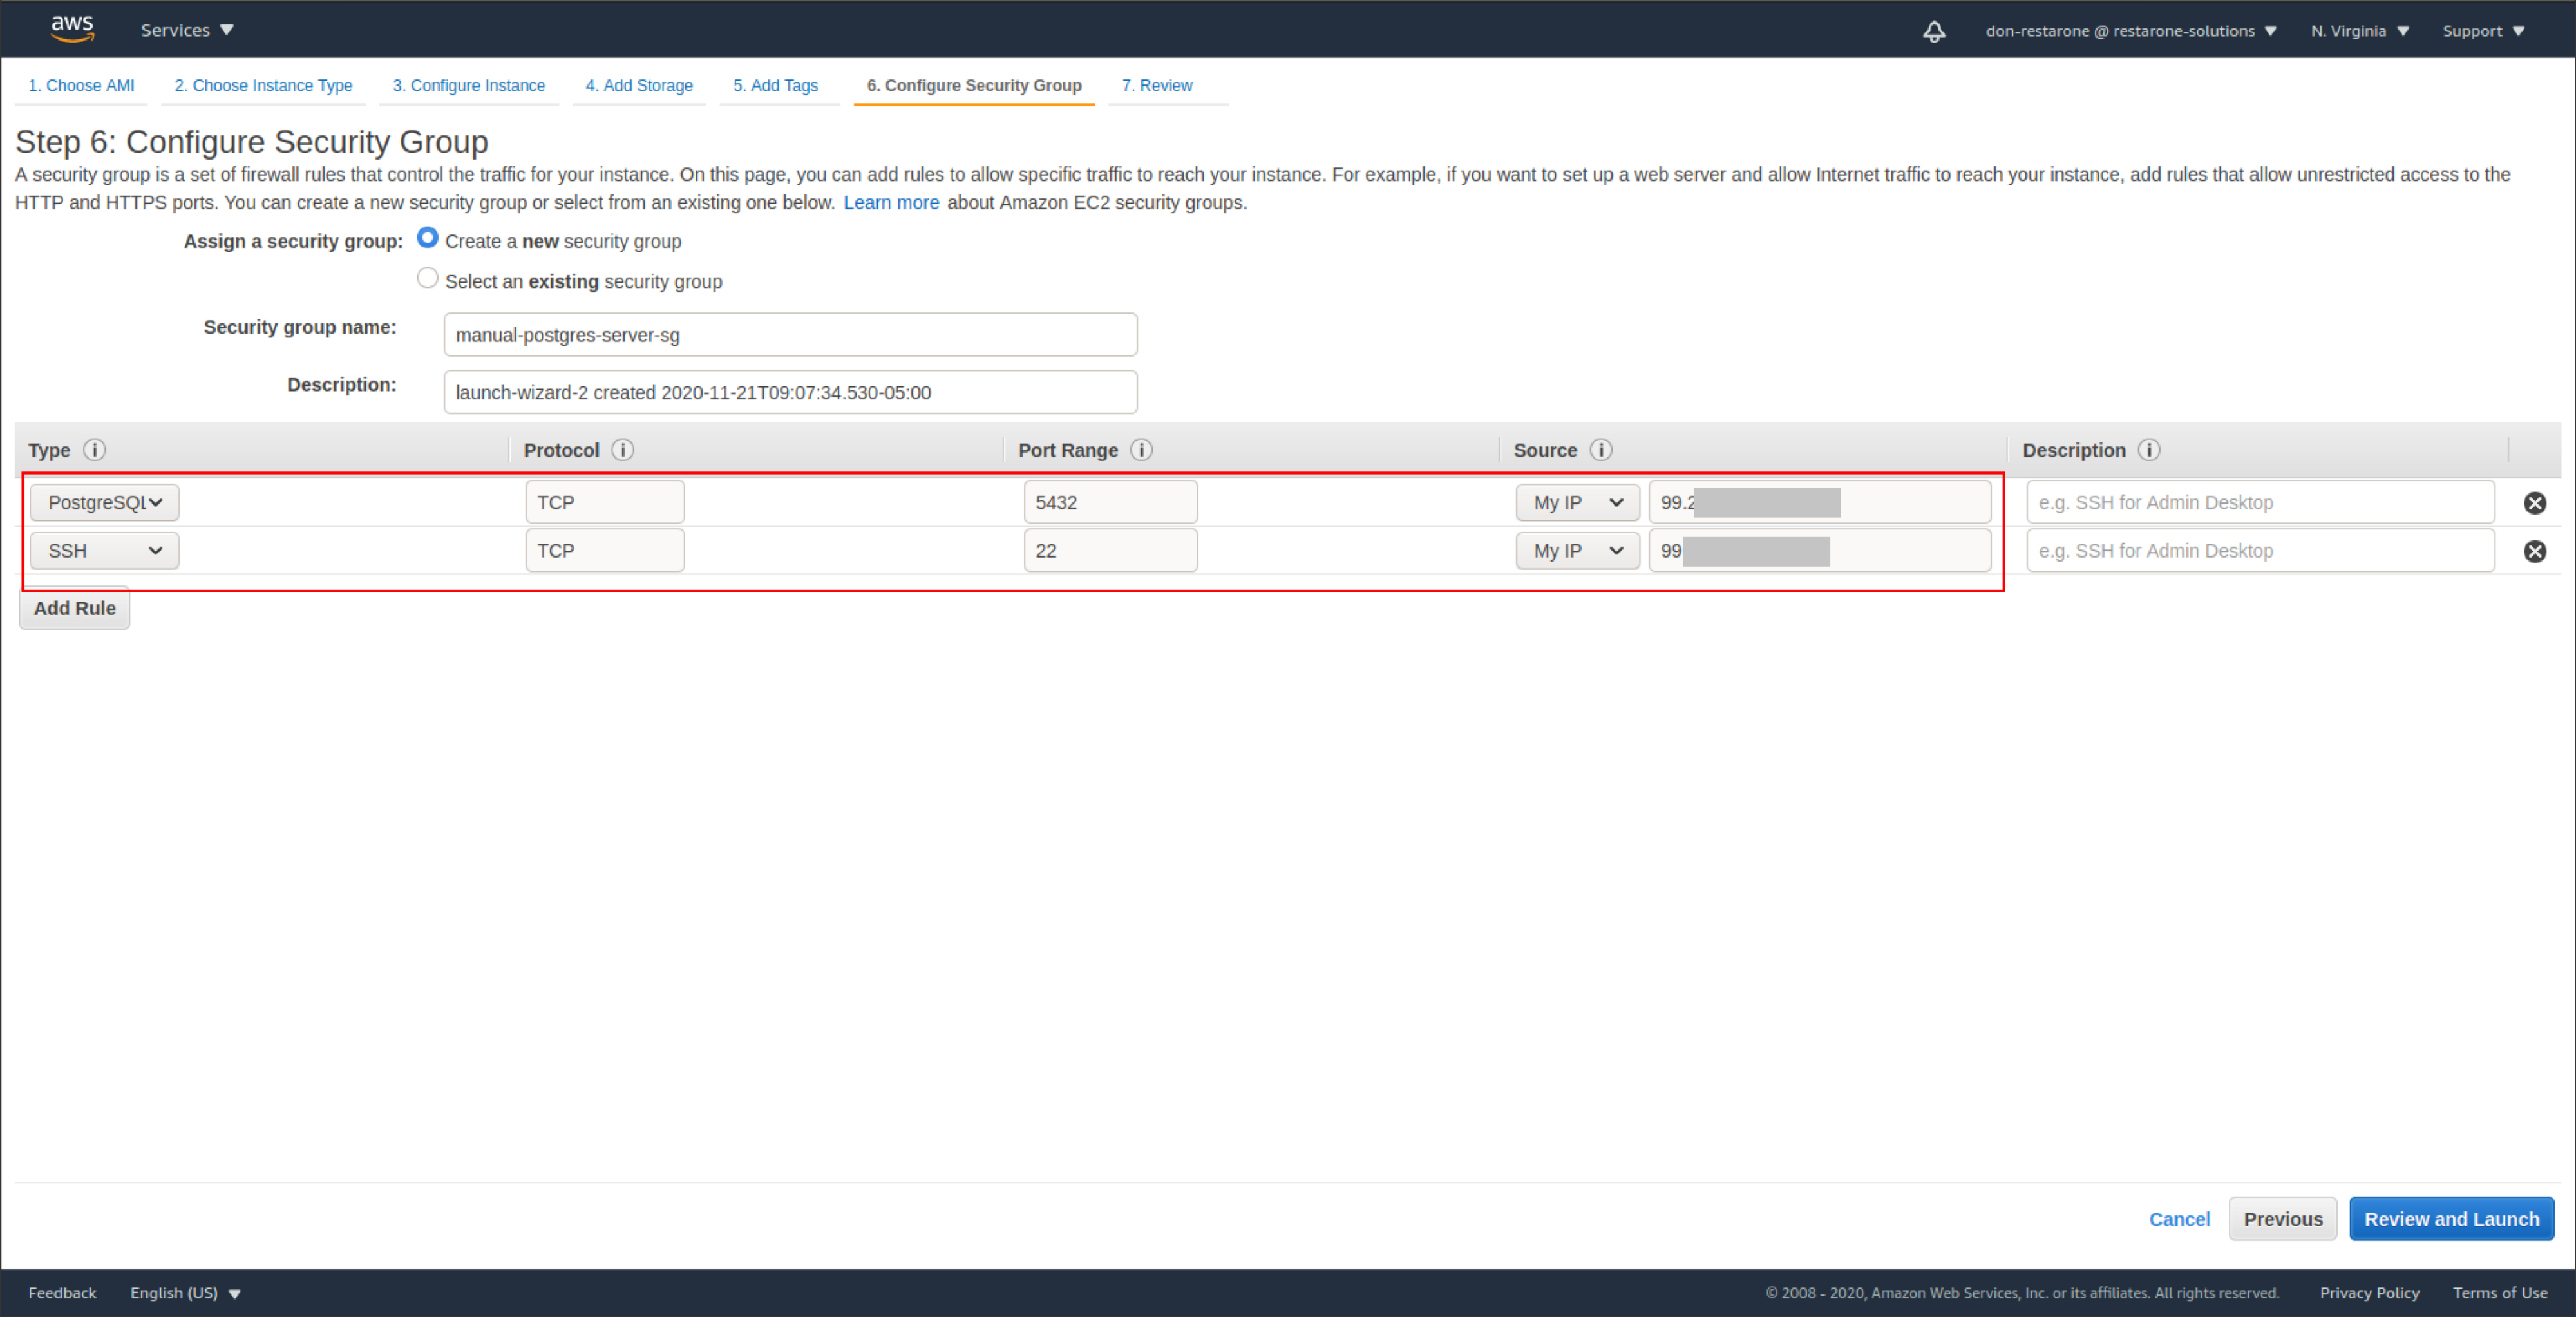 screenshot: Step 6. configure security group with settings to access the server via SSH and the Postgres port